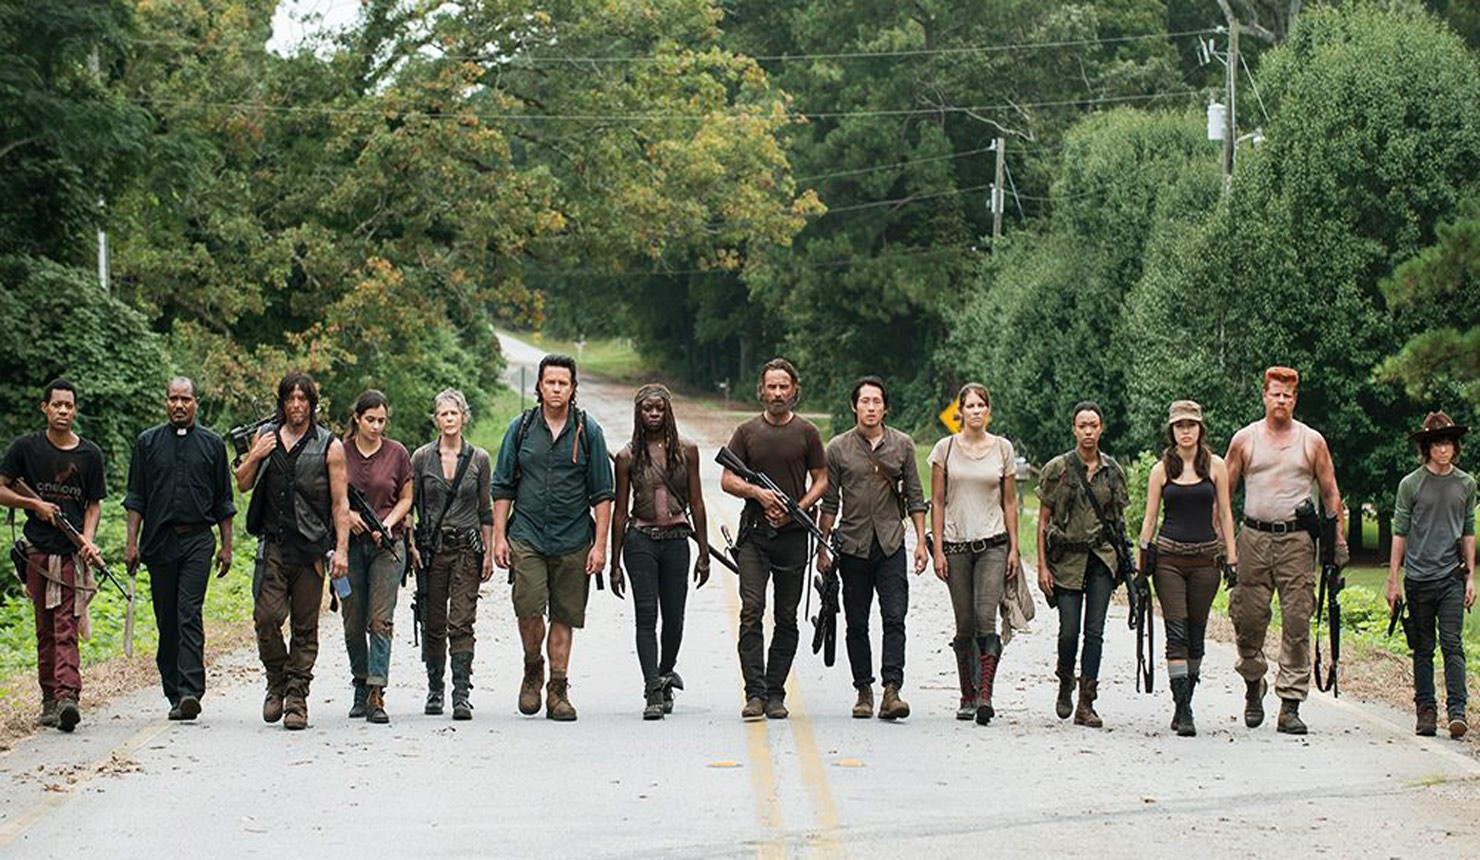 the-walking-dead-season-5-cast-wallpaper.jpg